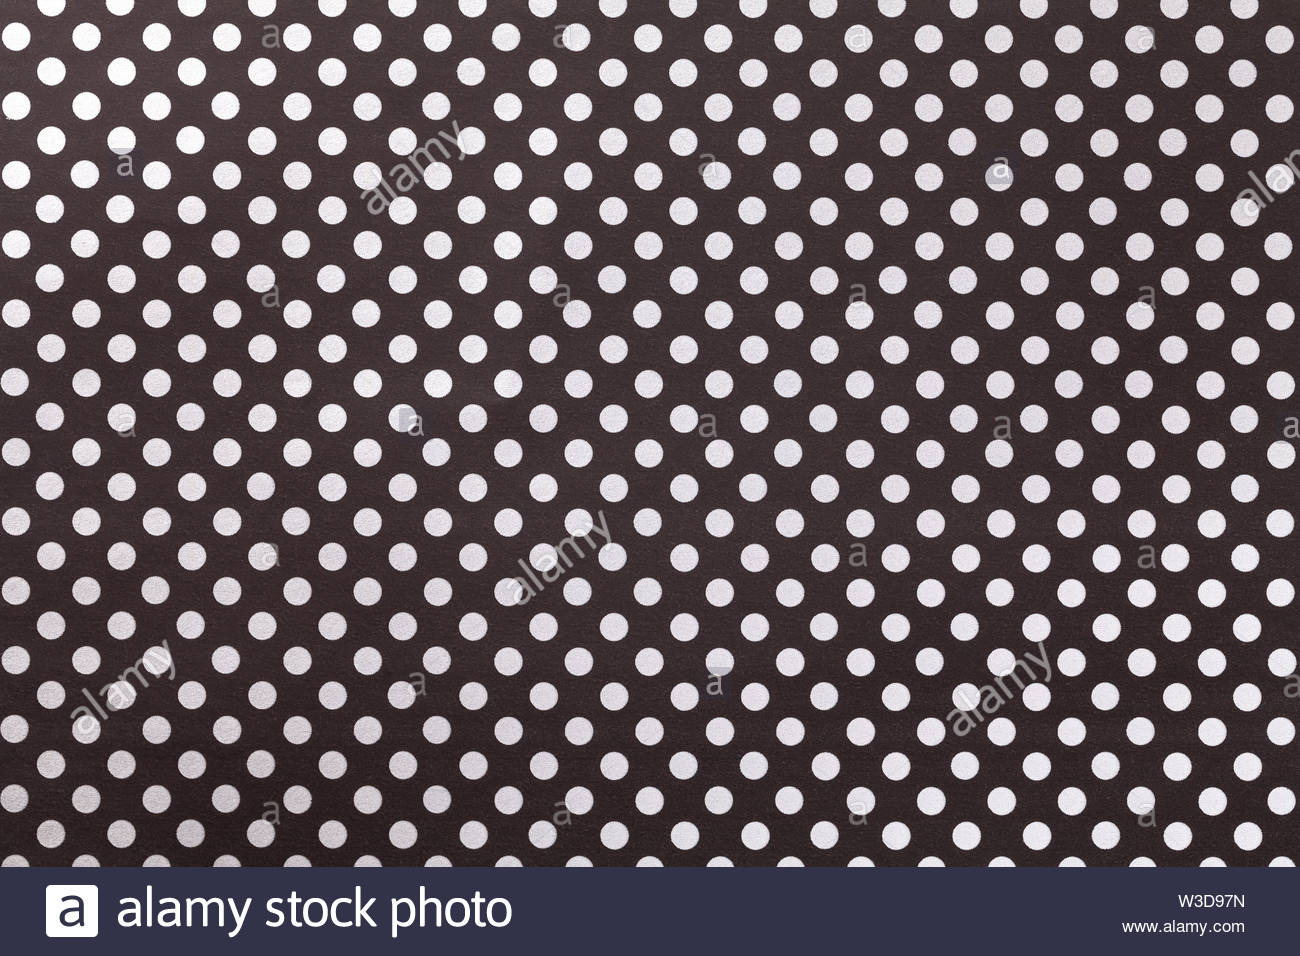 Black background from wrapping paper with a pattern of white polka 1300x956